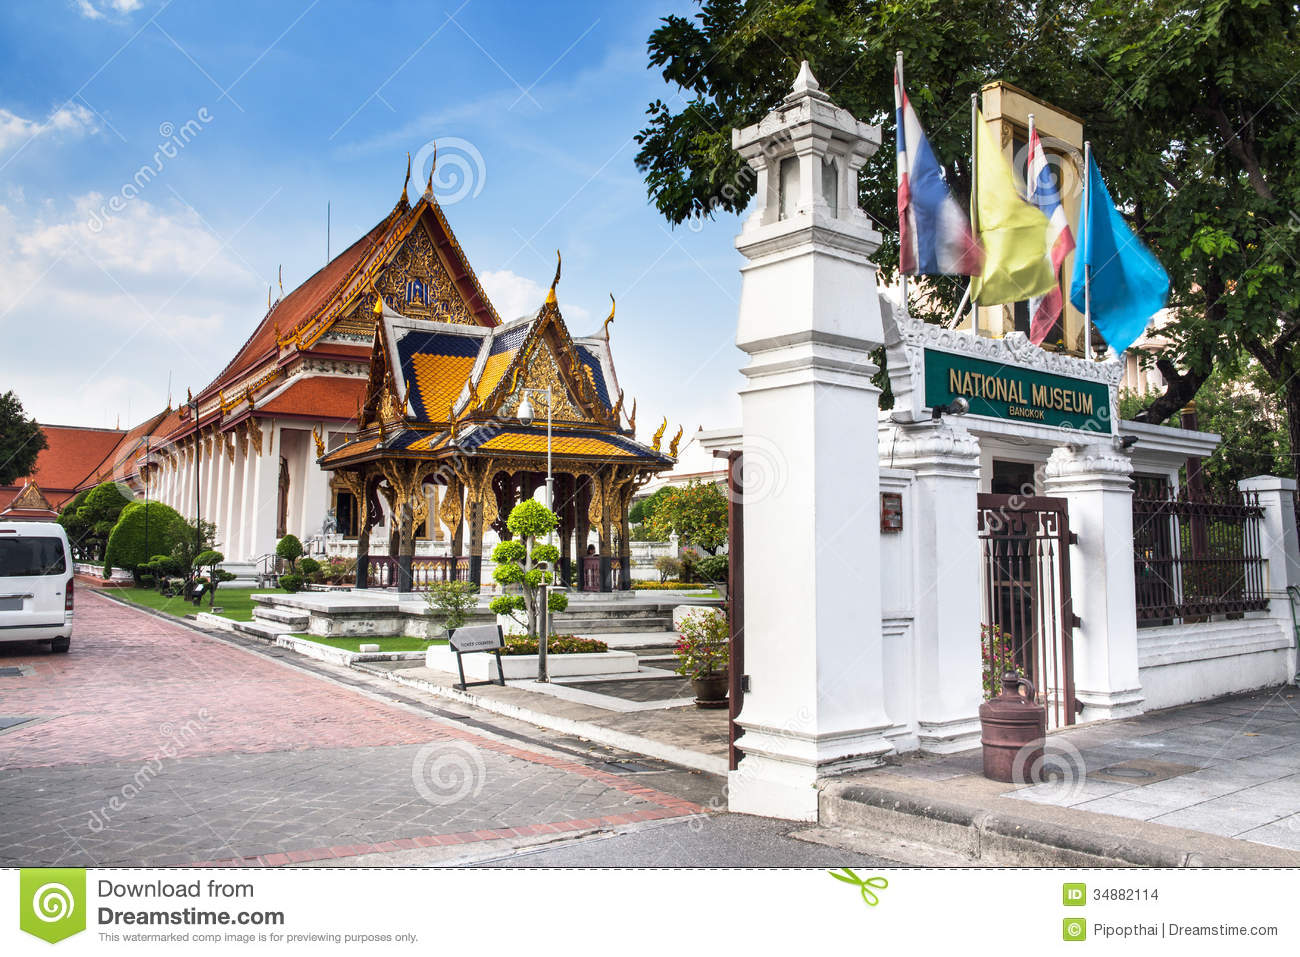 The National Museum,Bangkok, Thailand. Stock Images - Image: 34882114